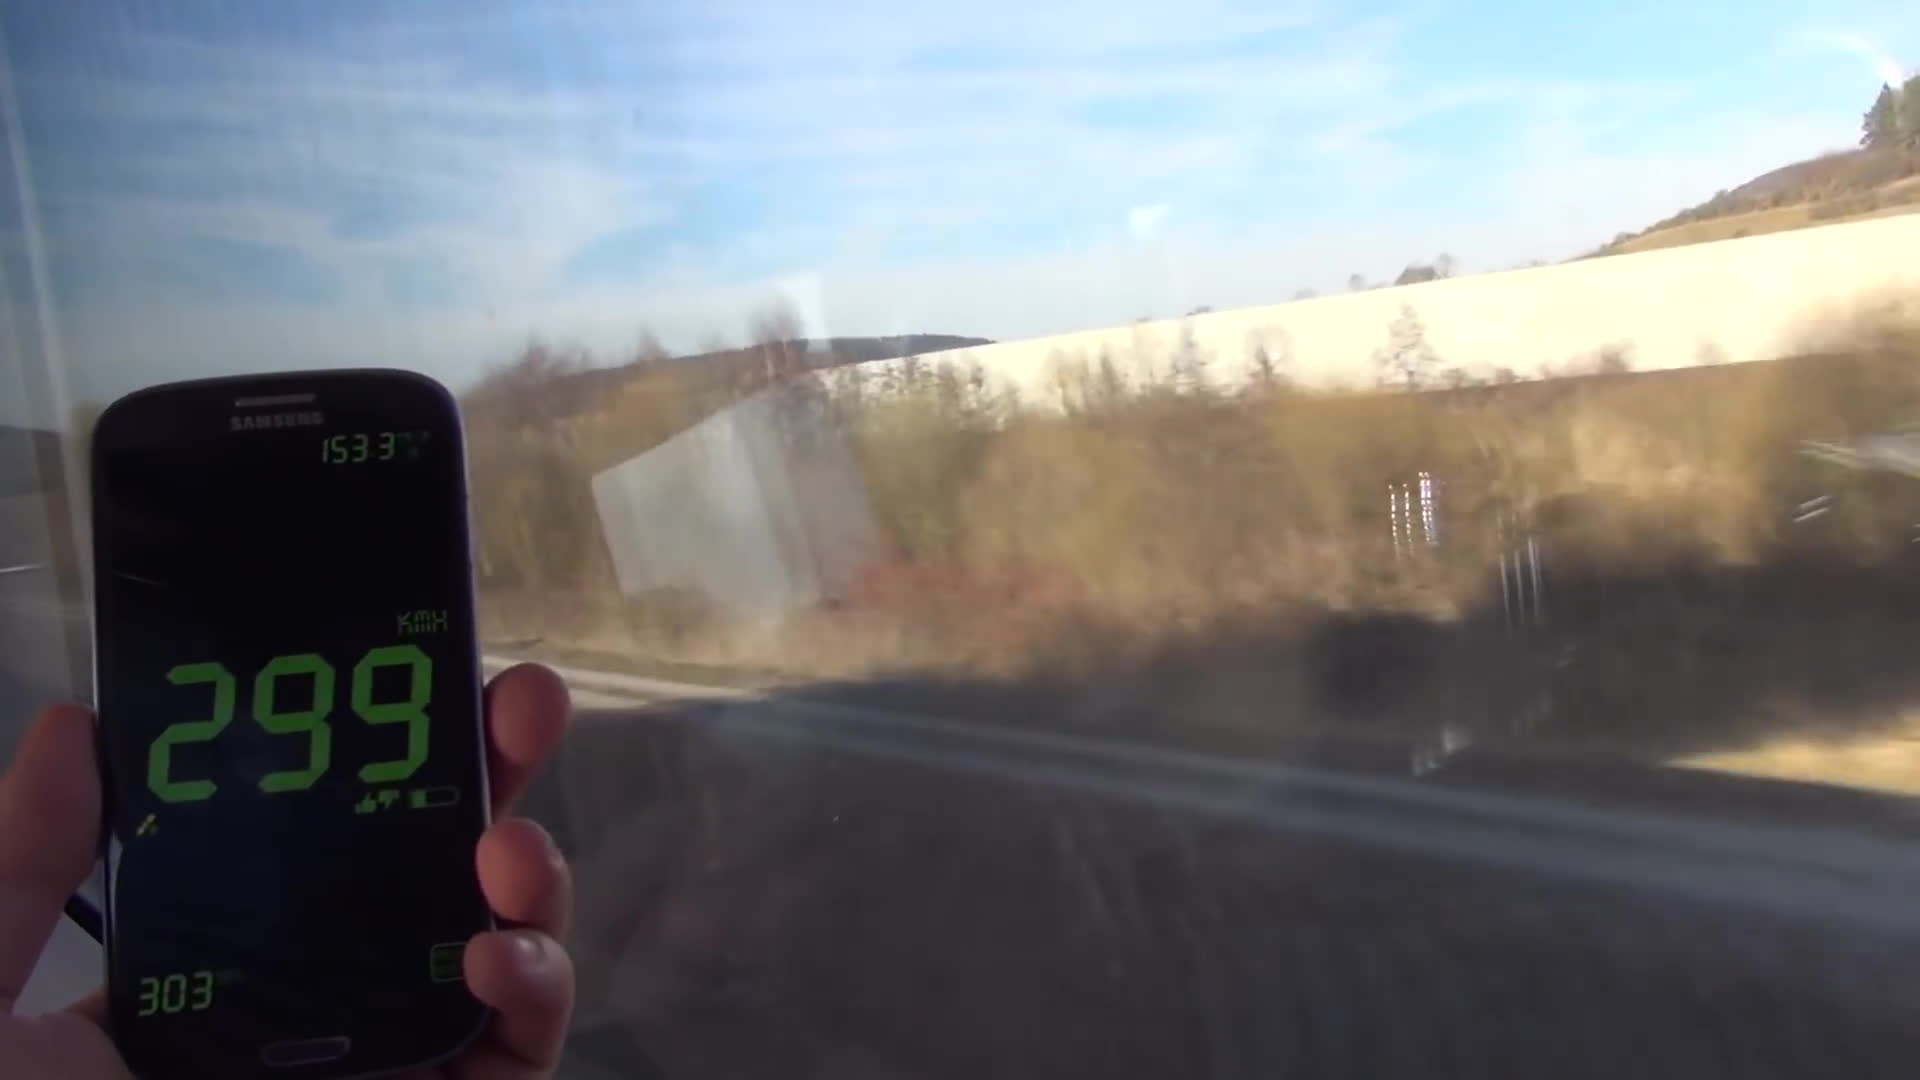 gifs, trains, German ICE Train 300 Kmh / 186 mph beside the Autobahn GIFs